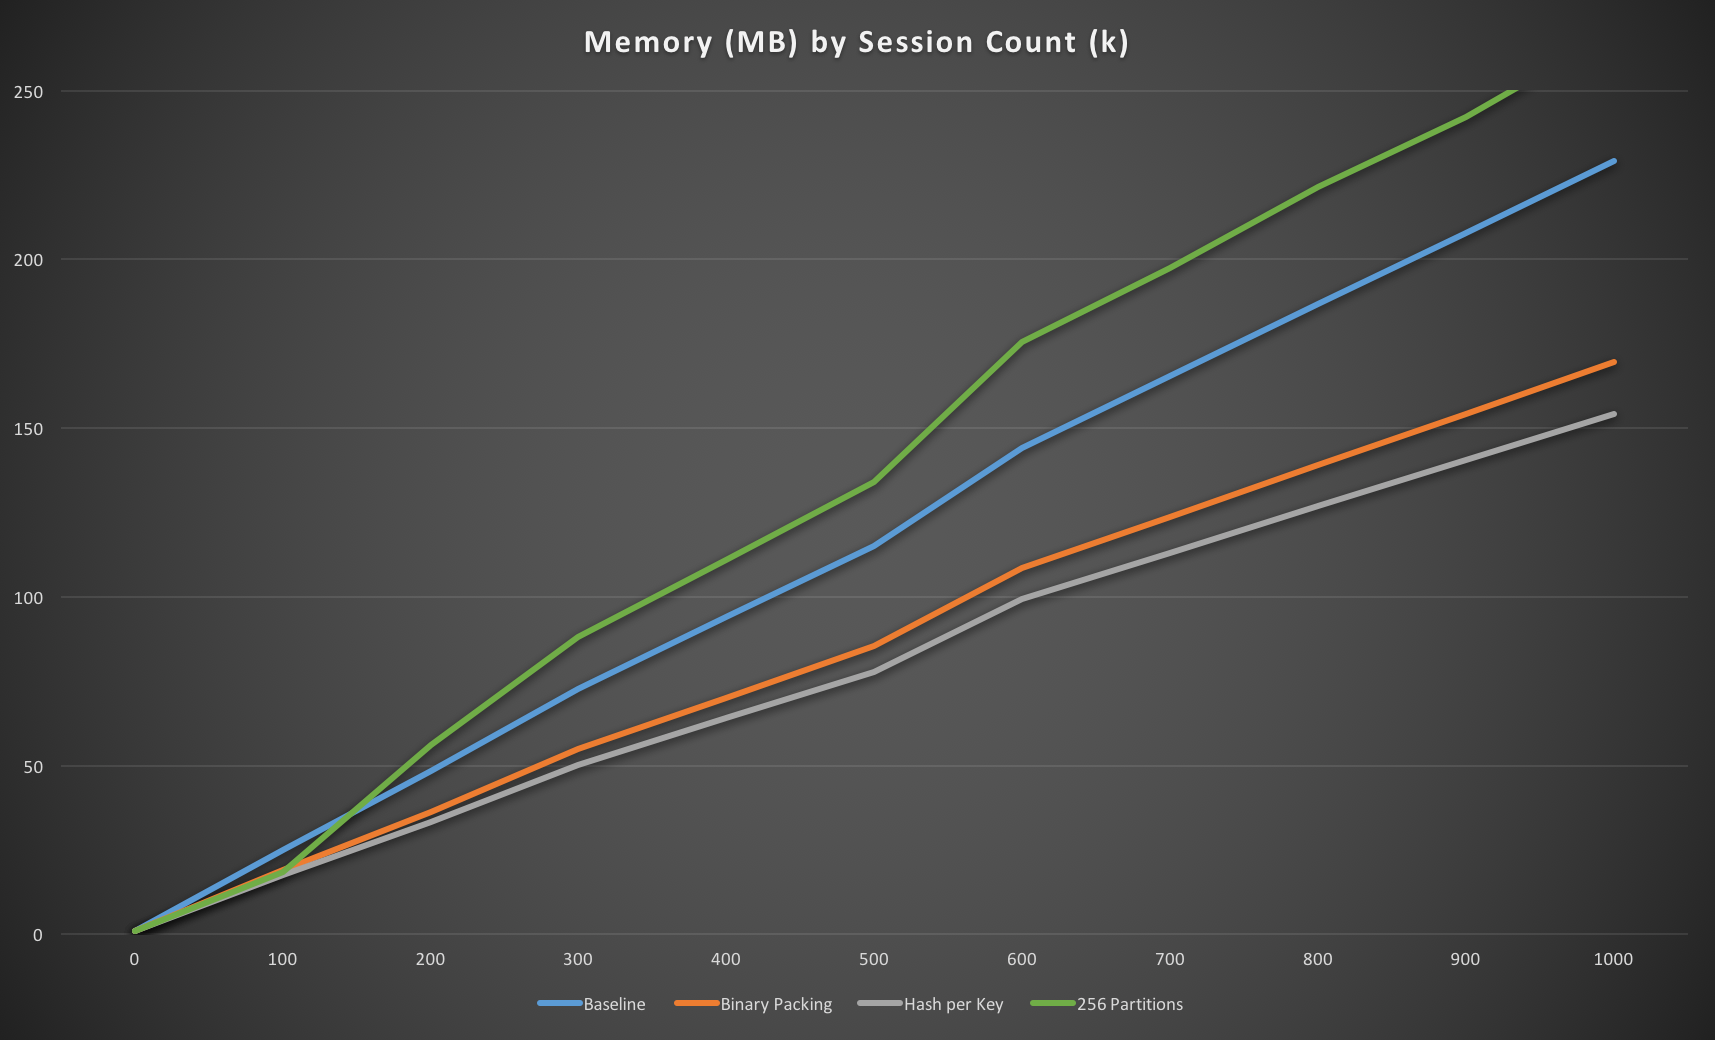 256 partitions memory usage